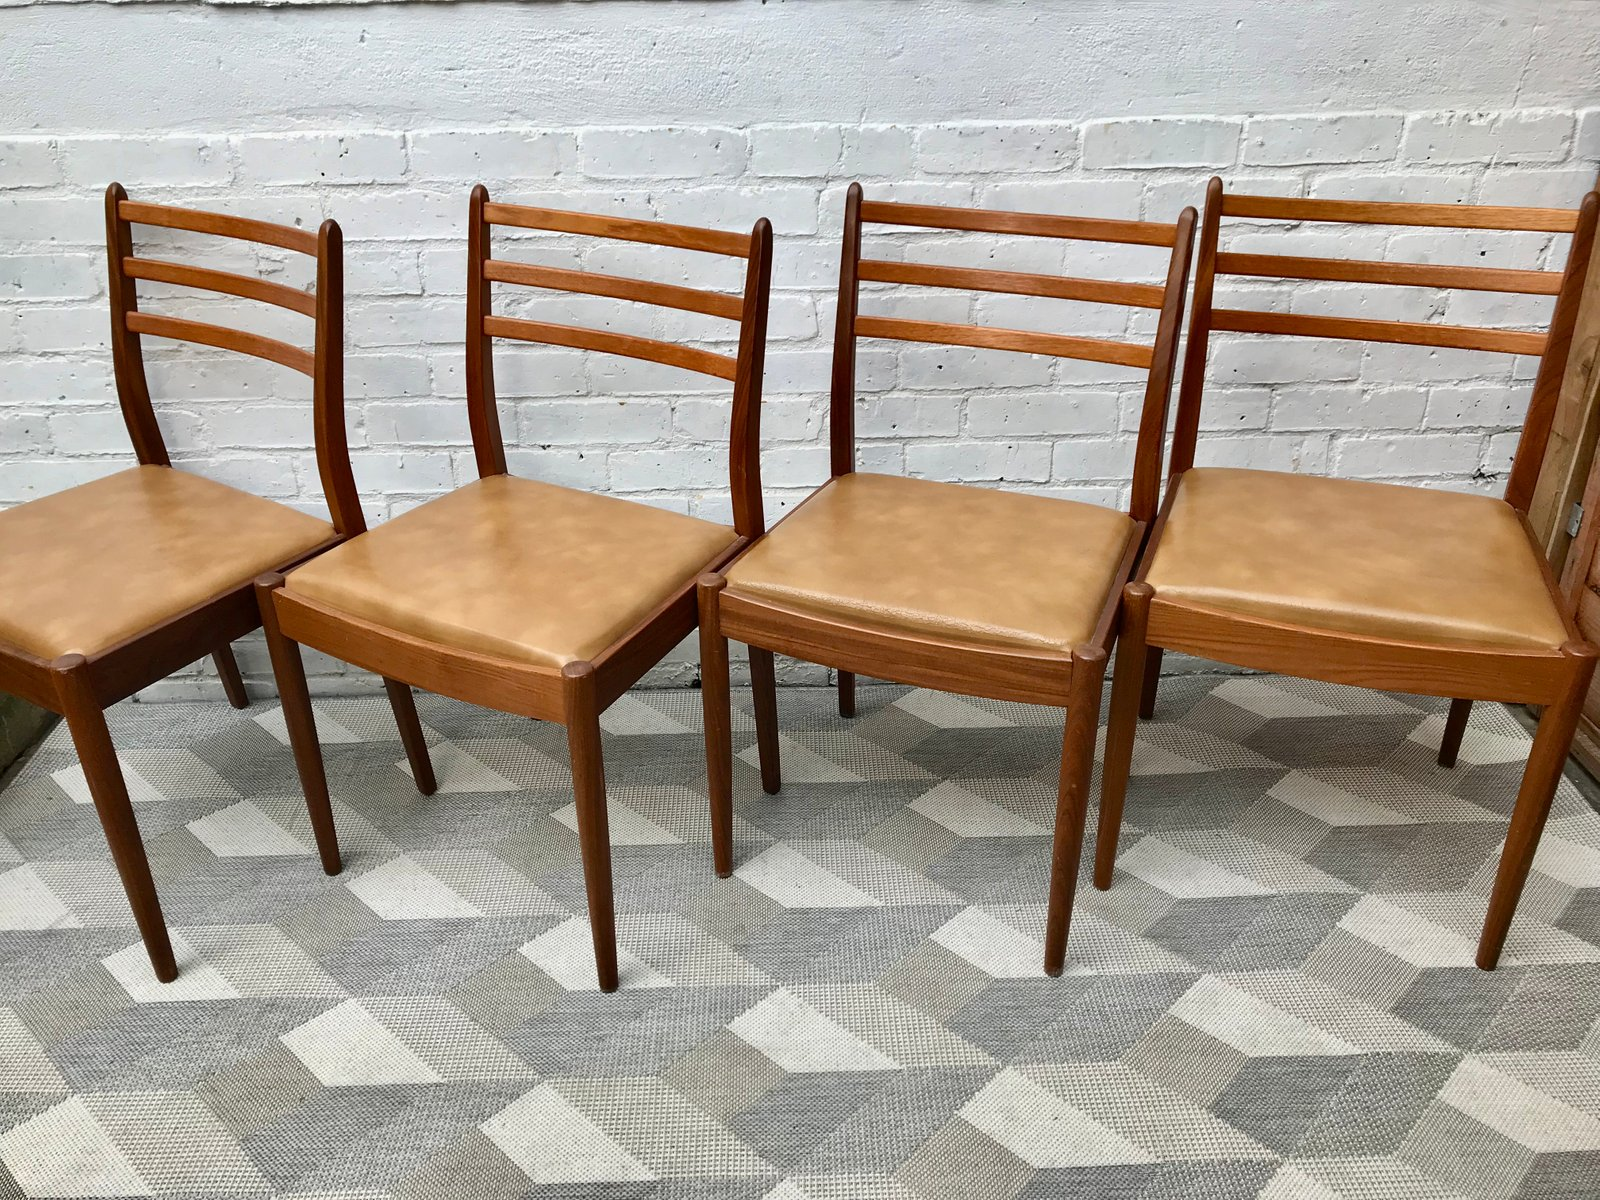 Vintage Vinyl Teak Dining Chairs From G Plan Set Of 4 For Sale At Pamono